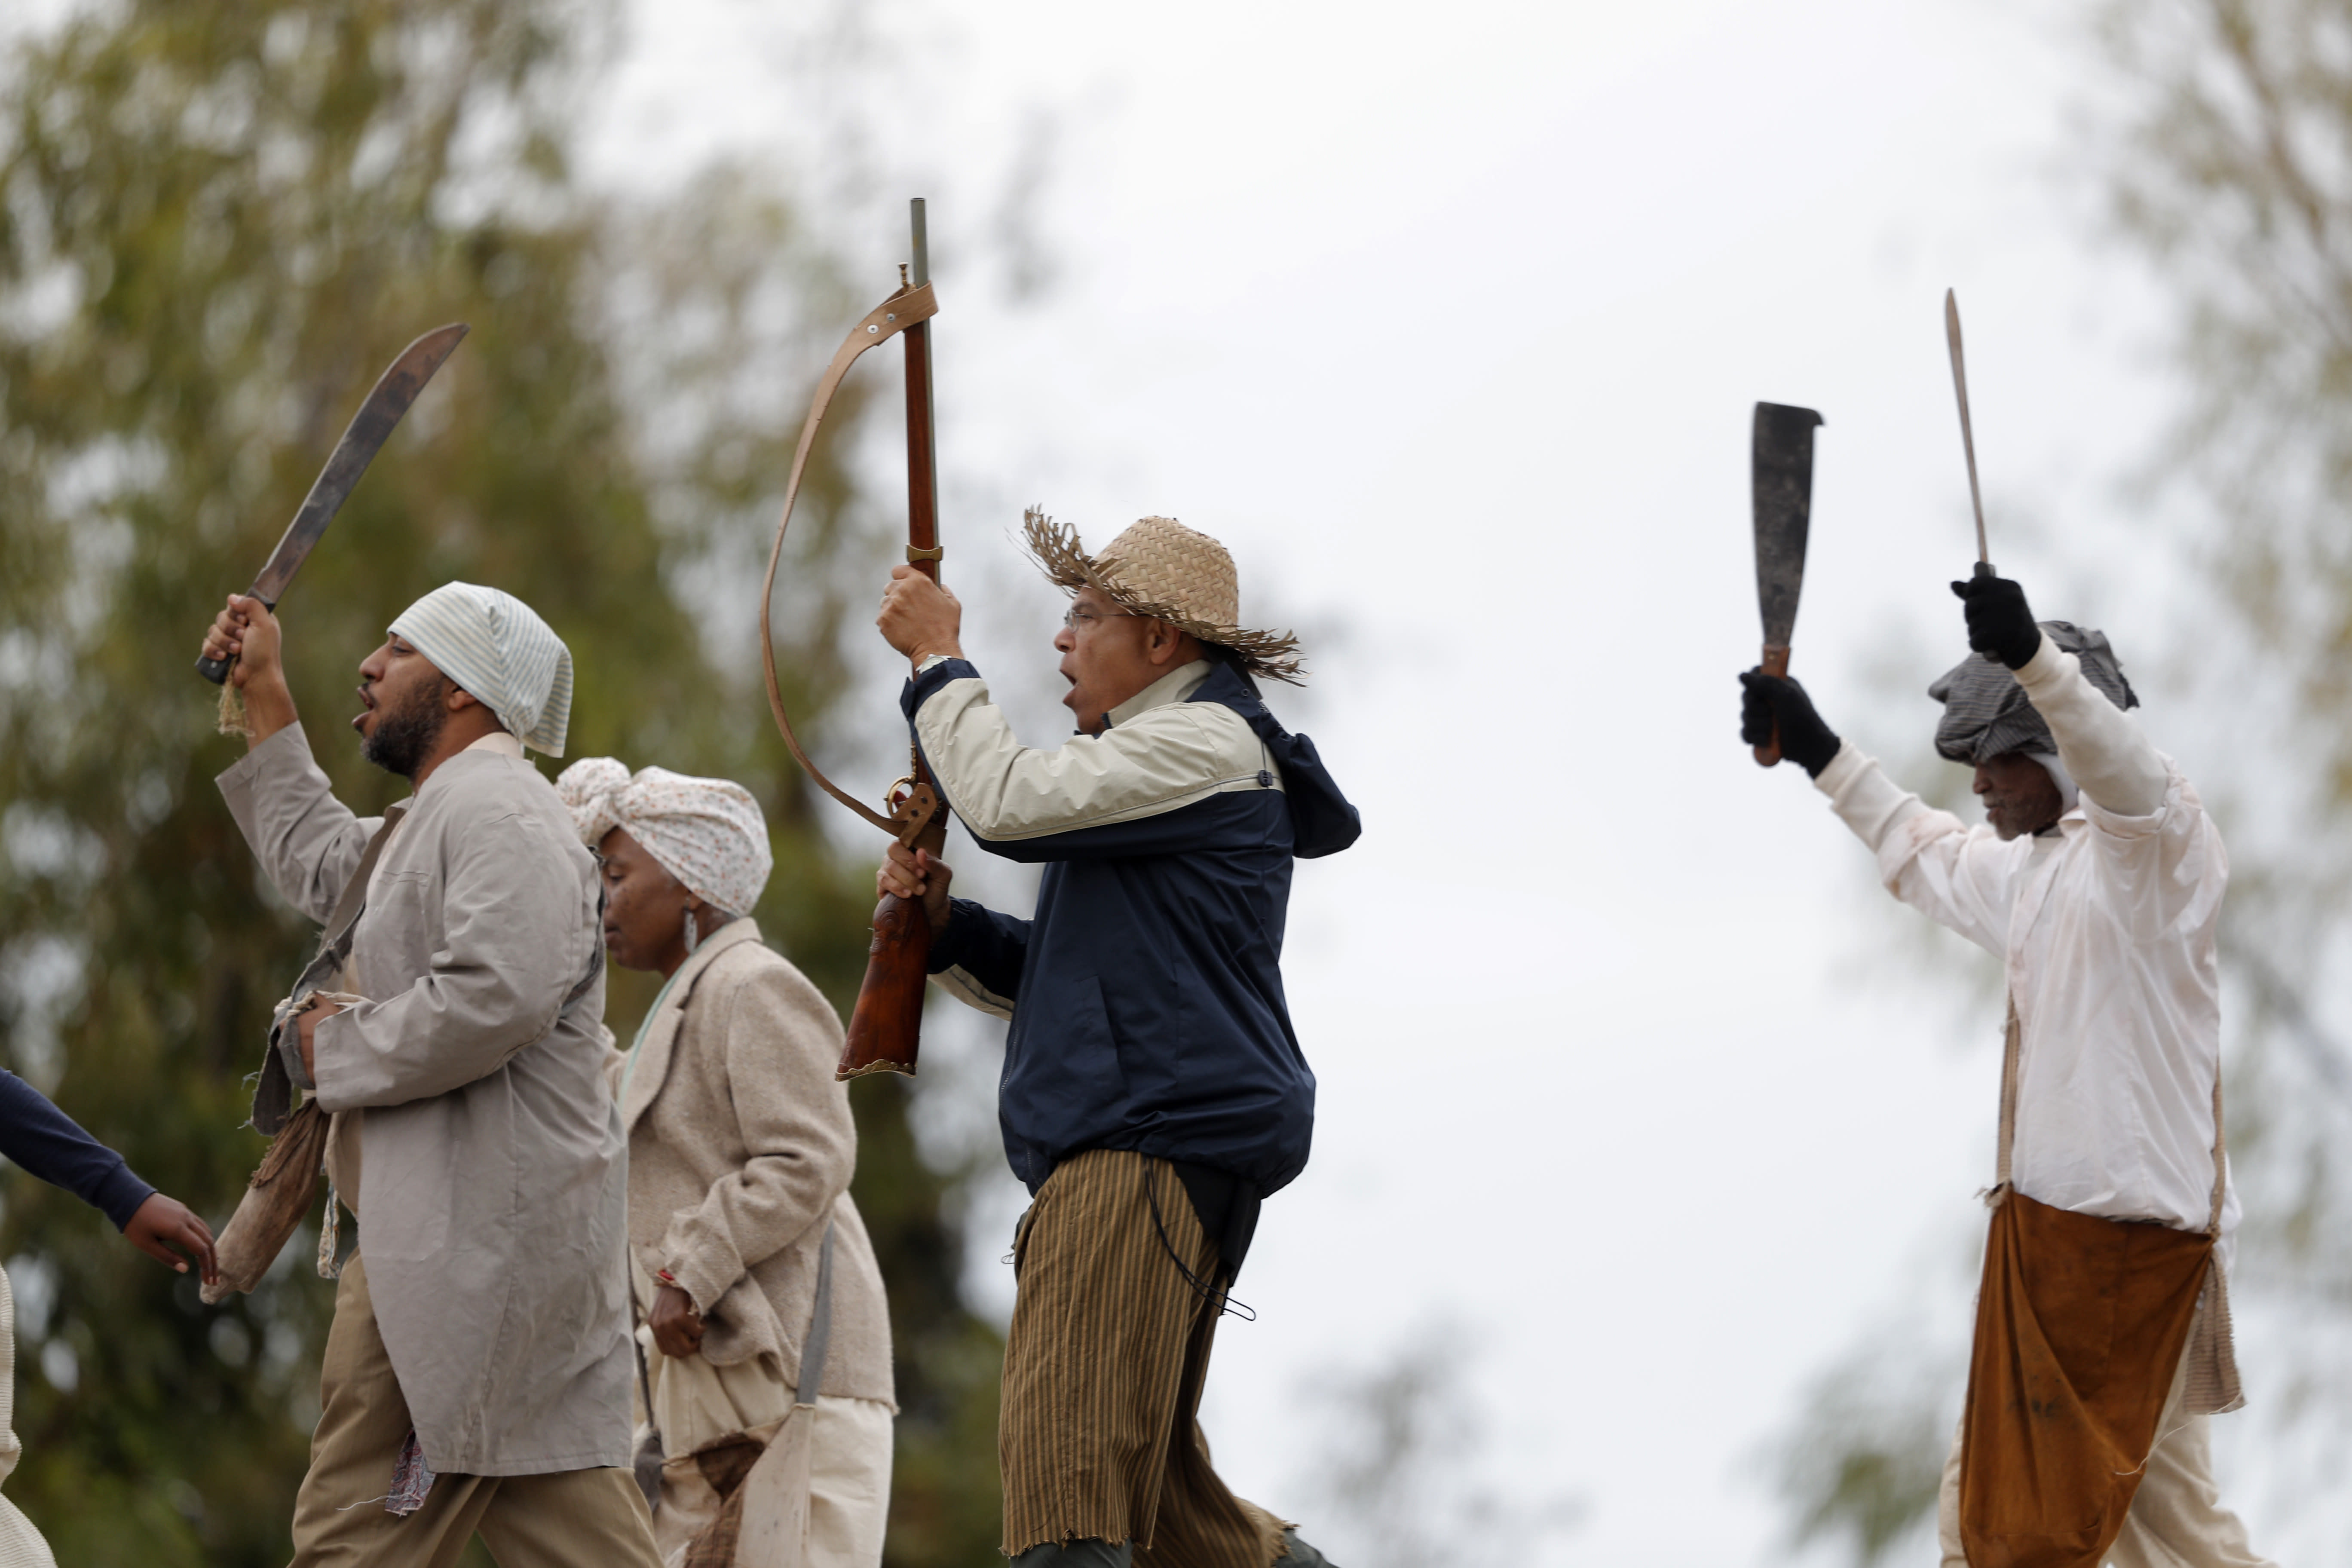 People march along the Mississippi River levee as they participate in a reenactment of the largest slave rebellion in U.S. history, in LaPlace, La., Friday, Nov. 8, 2019. The reenactment was conceived by Dread Scott, an artist who often tackles issues of racial oppression and injustice. (AP Photo/Gerald Herbert)